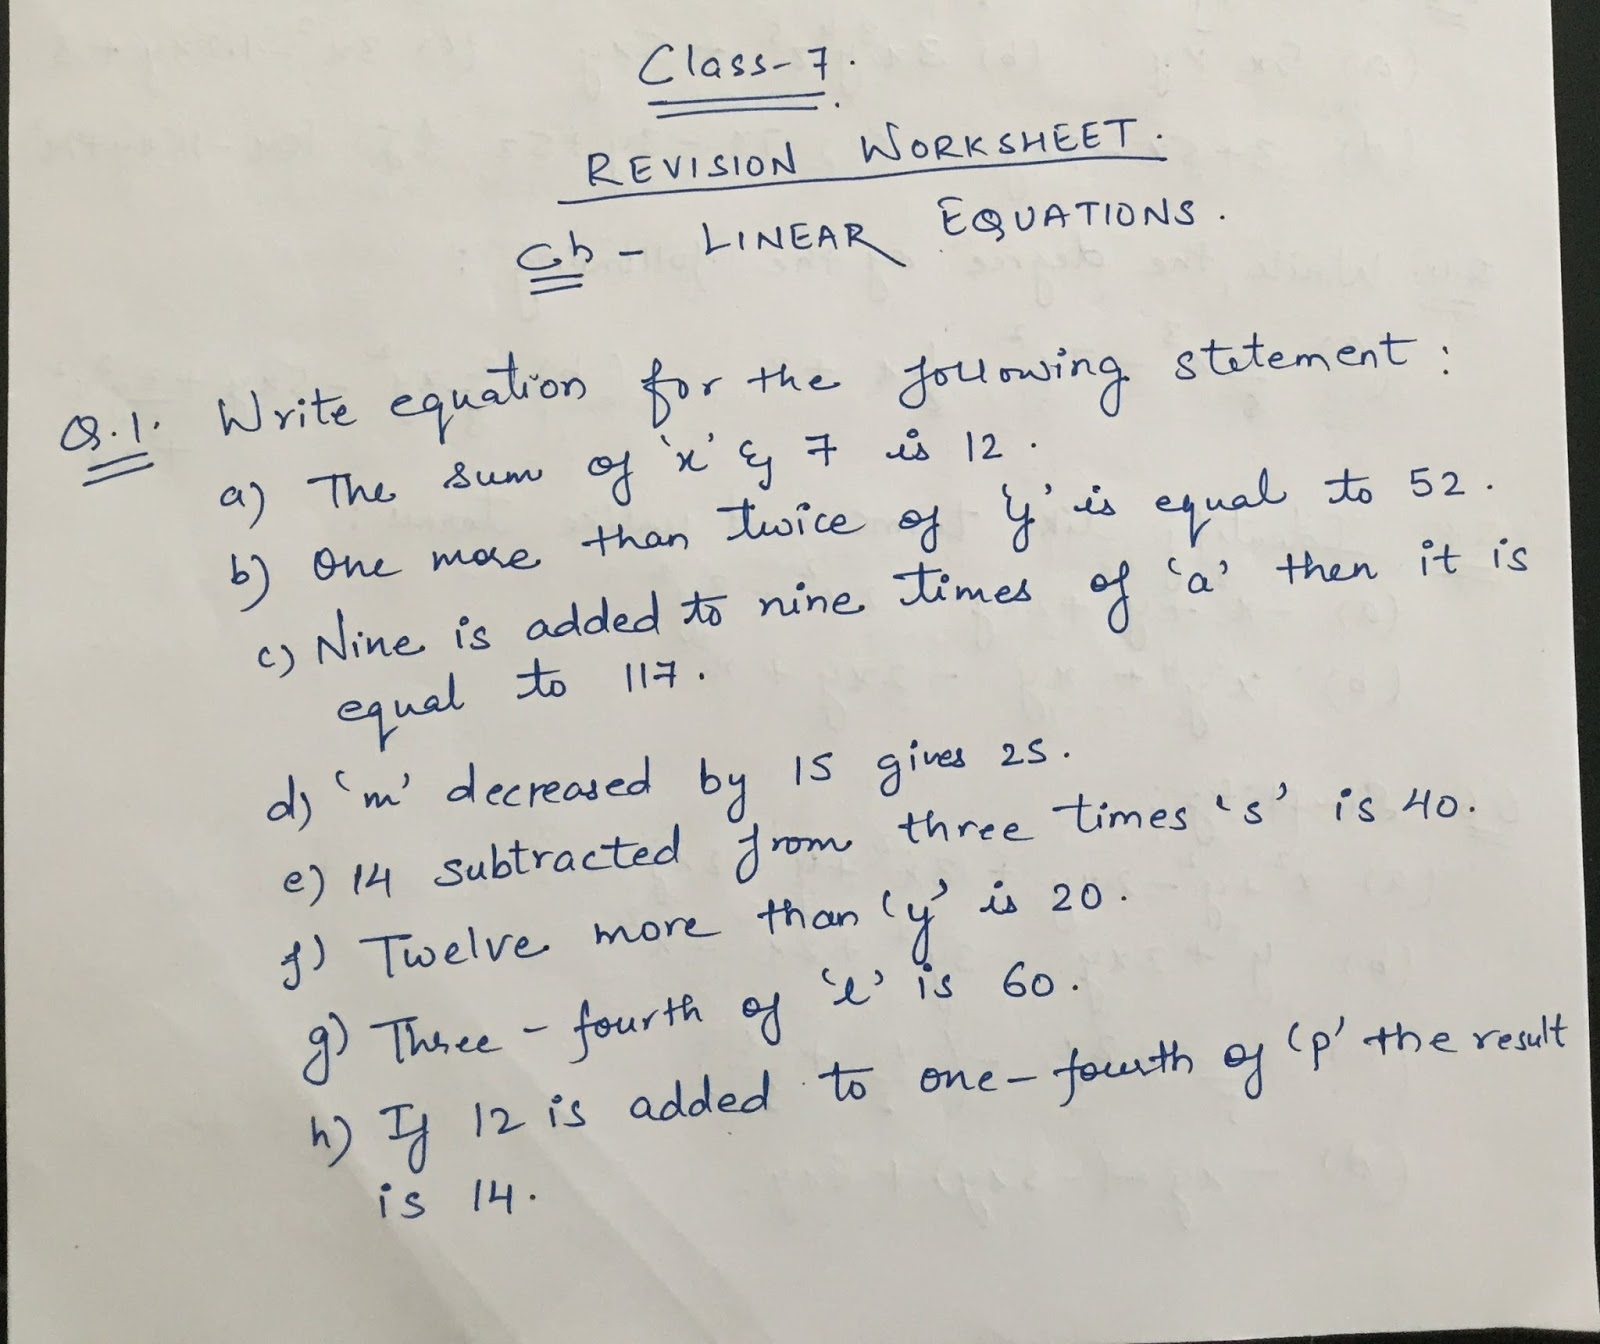 APS, Golconda | Priyanka Gupta: CLASS 7 / MATHS / REVISION WORKSHEET ...